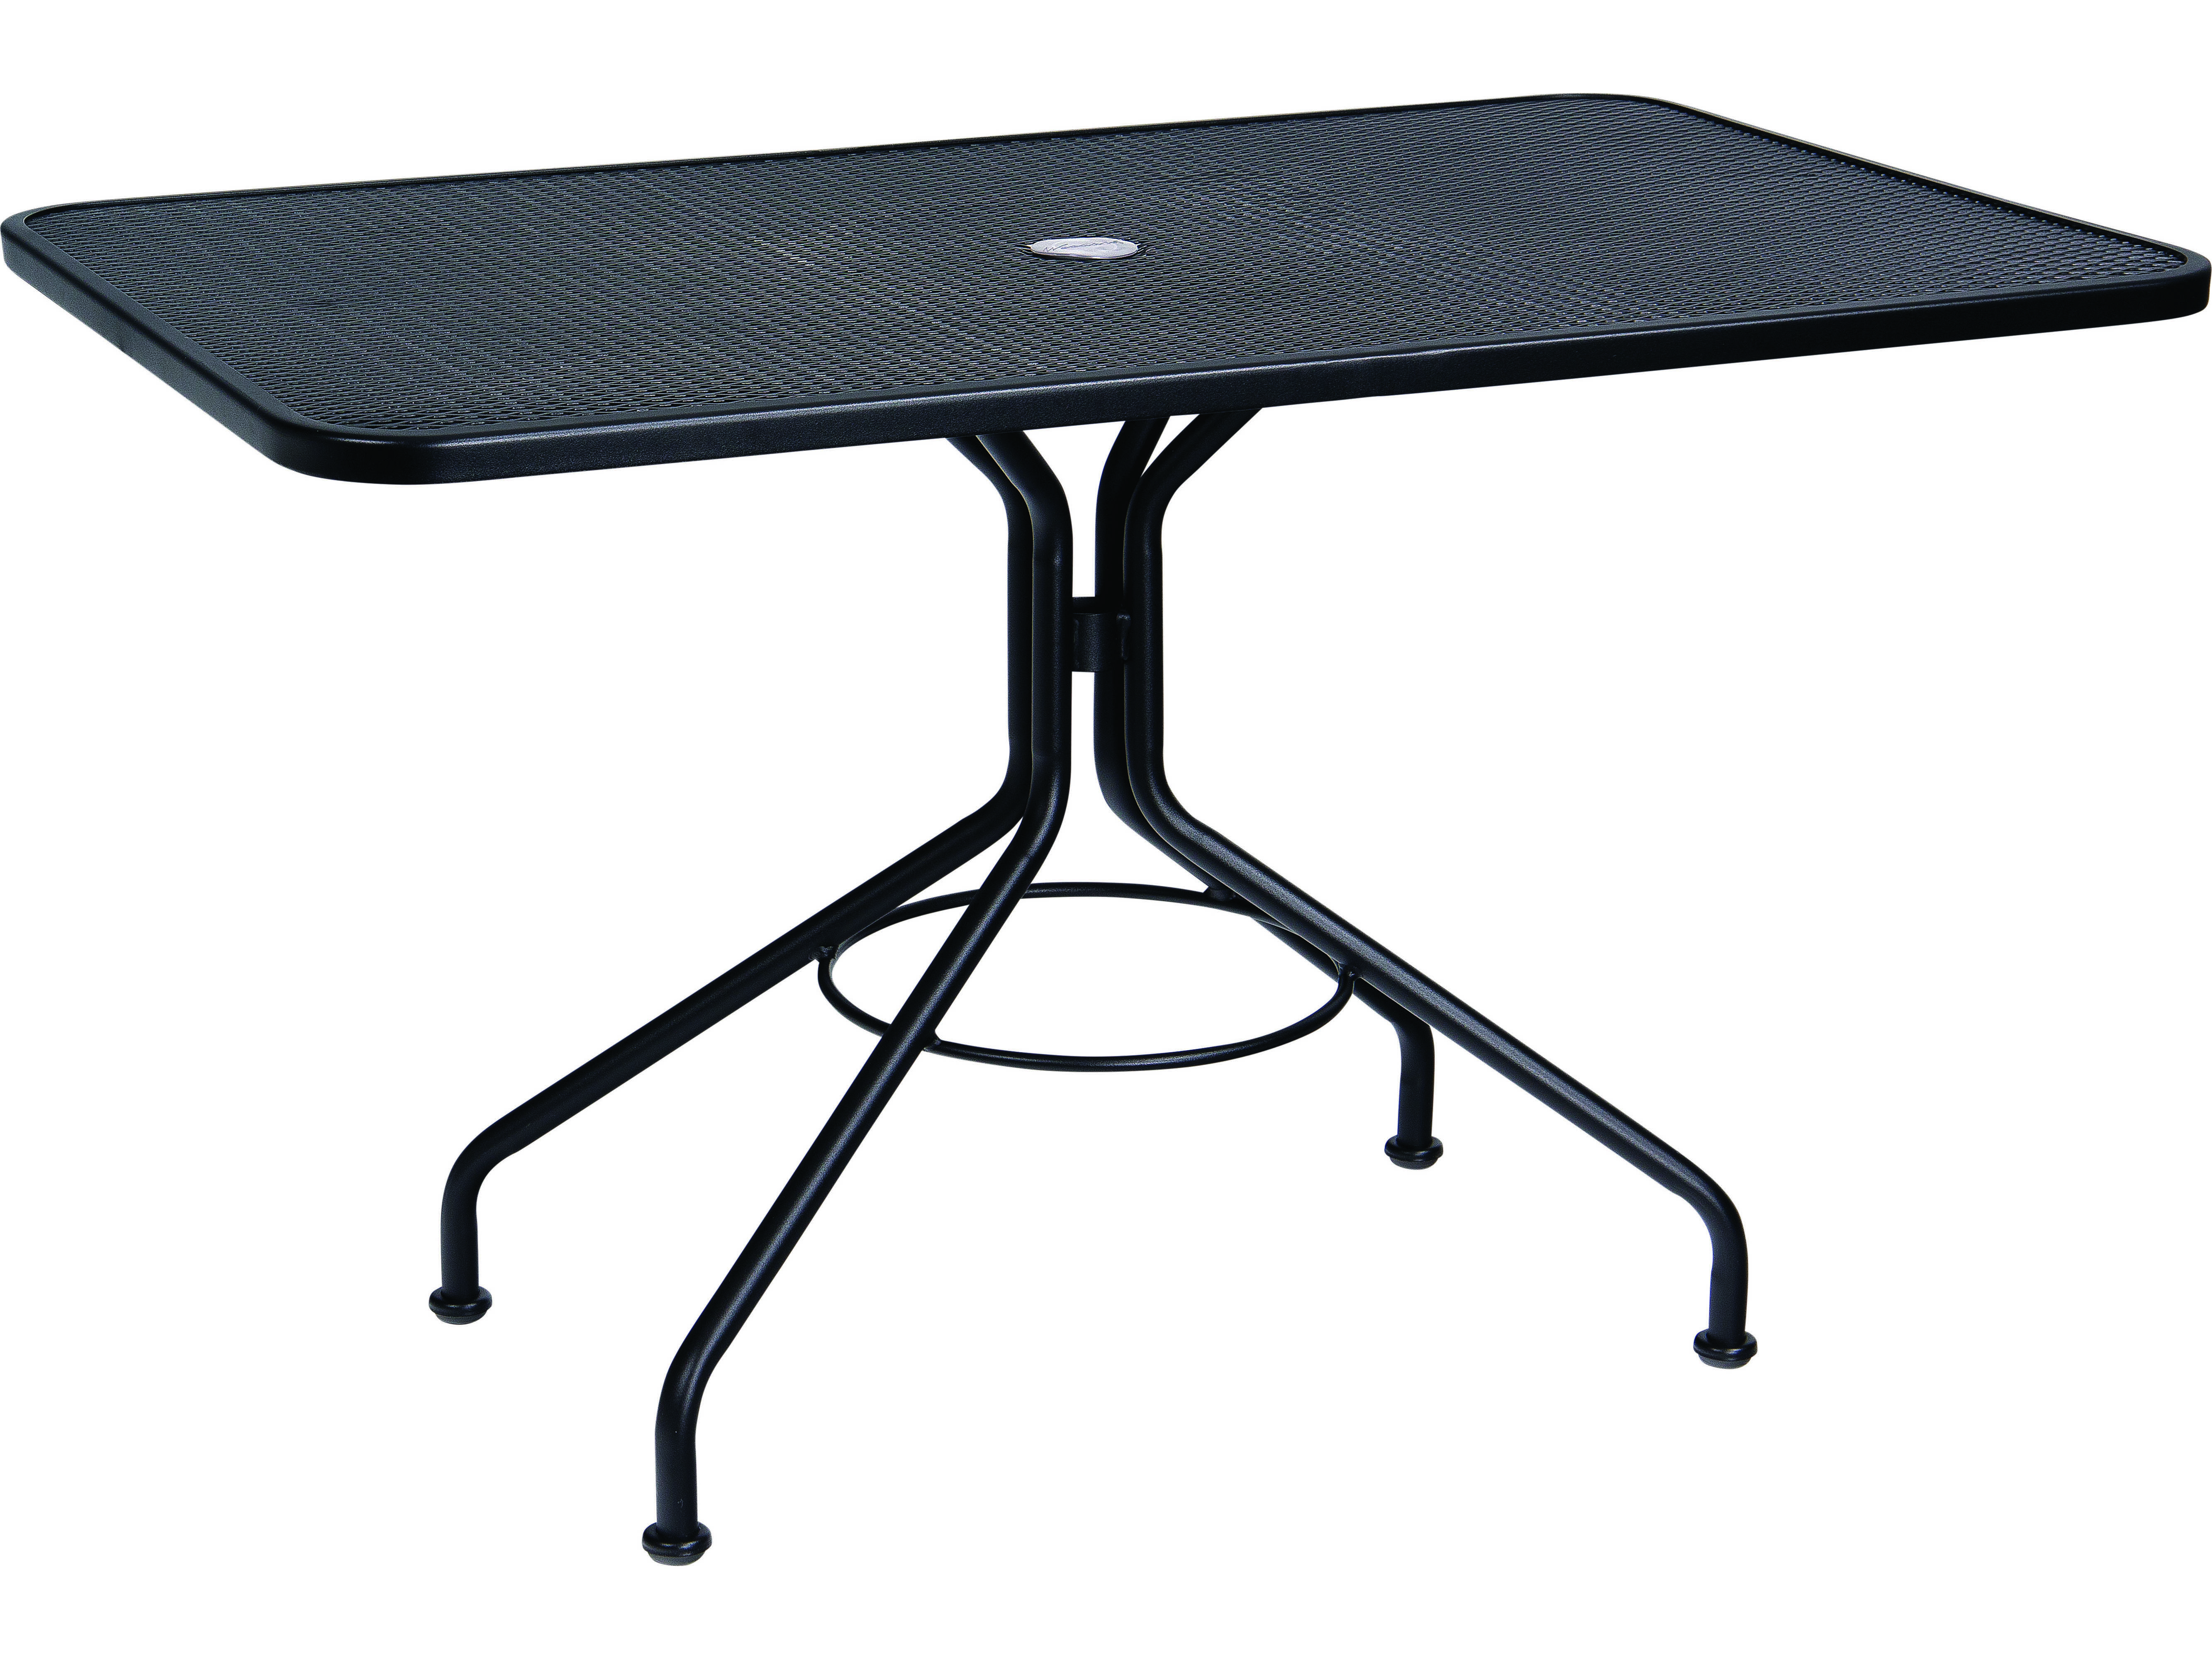 woodard wrought iron 48 x 30 rectangular table with umbrella hole 280030. Black Bedroom Furniture Sets. Home Design Ideas